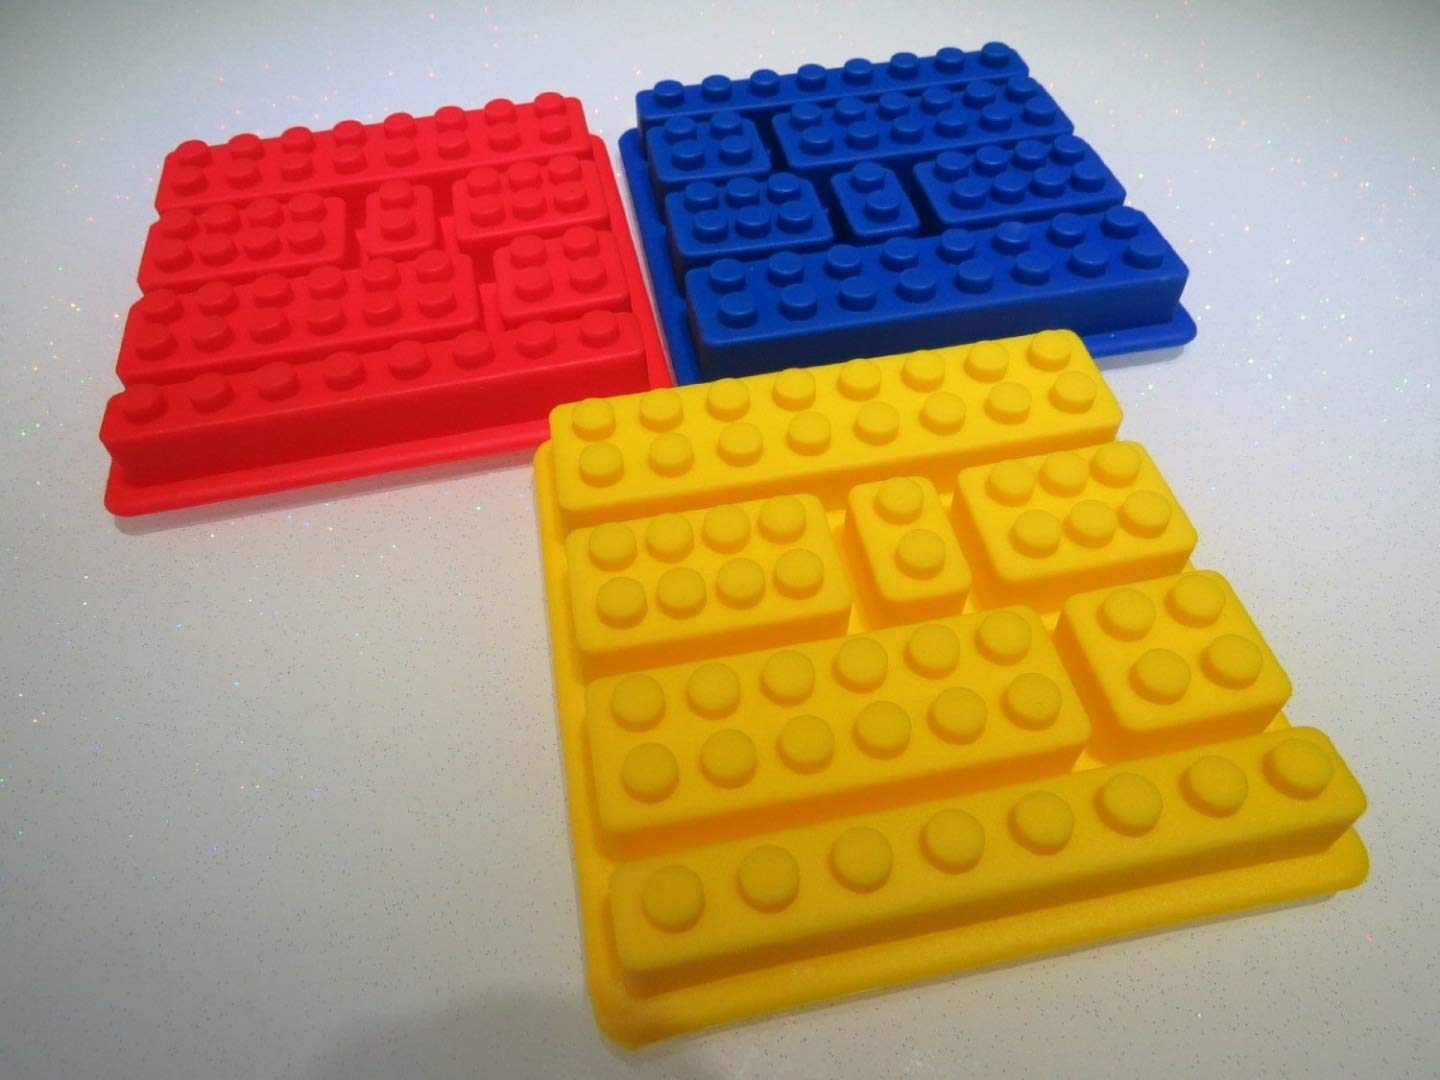 NEW 2015 Building Brick Silicone Chocolate Sugarpaste Fondant Icing Mould (Square) own label